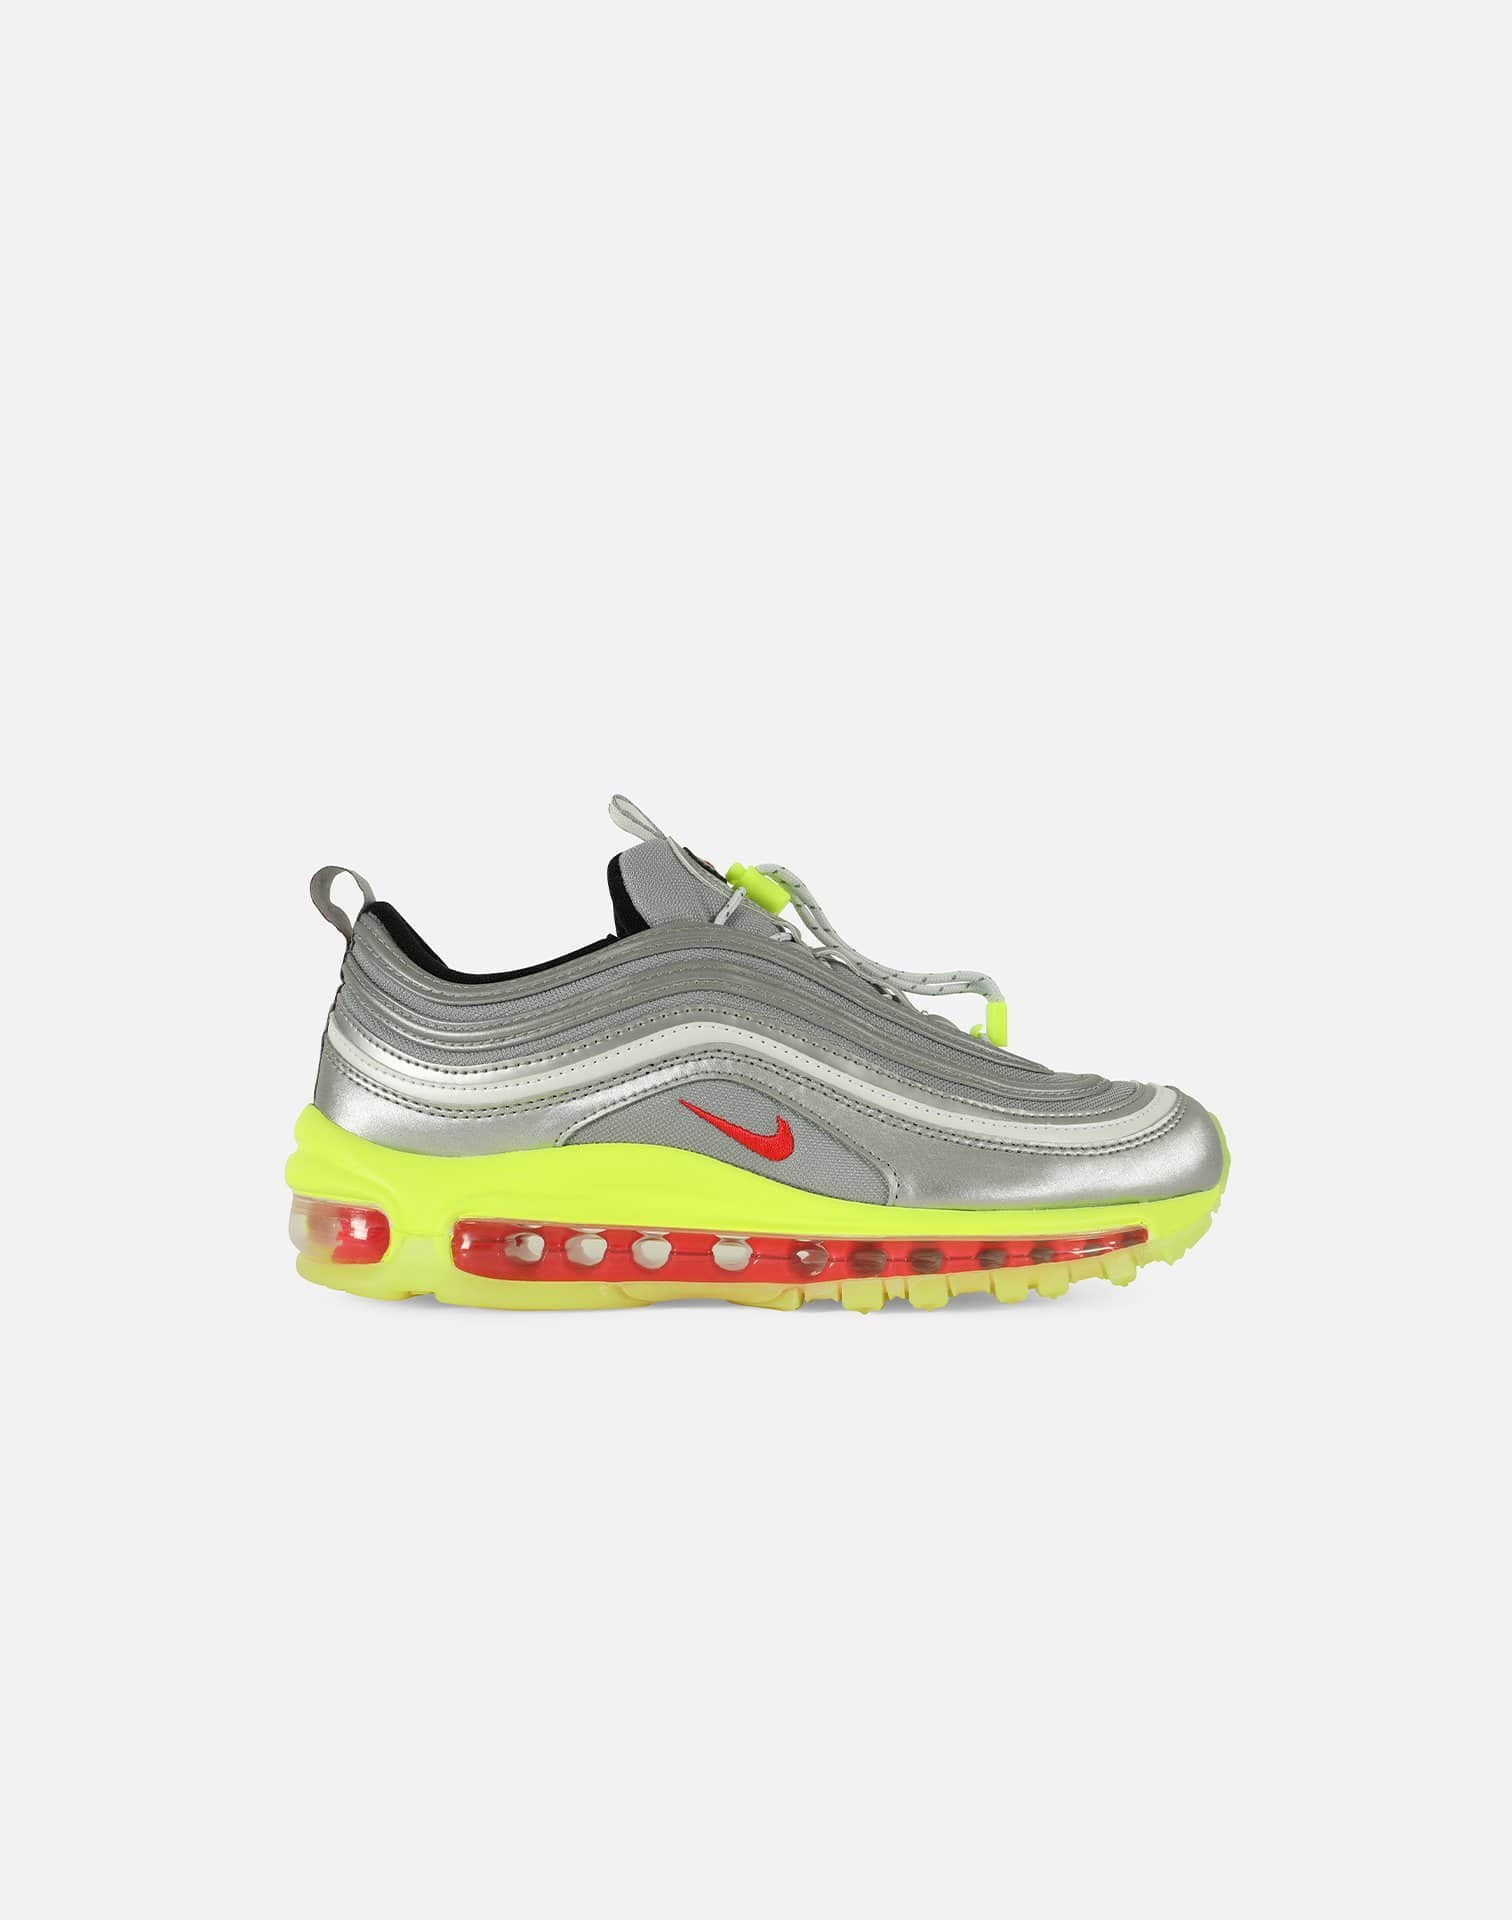 Nike Air Max 97 RFT Grade-School